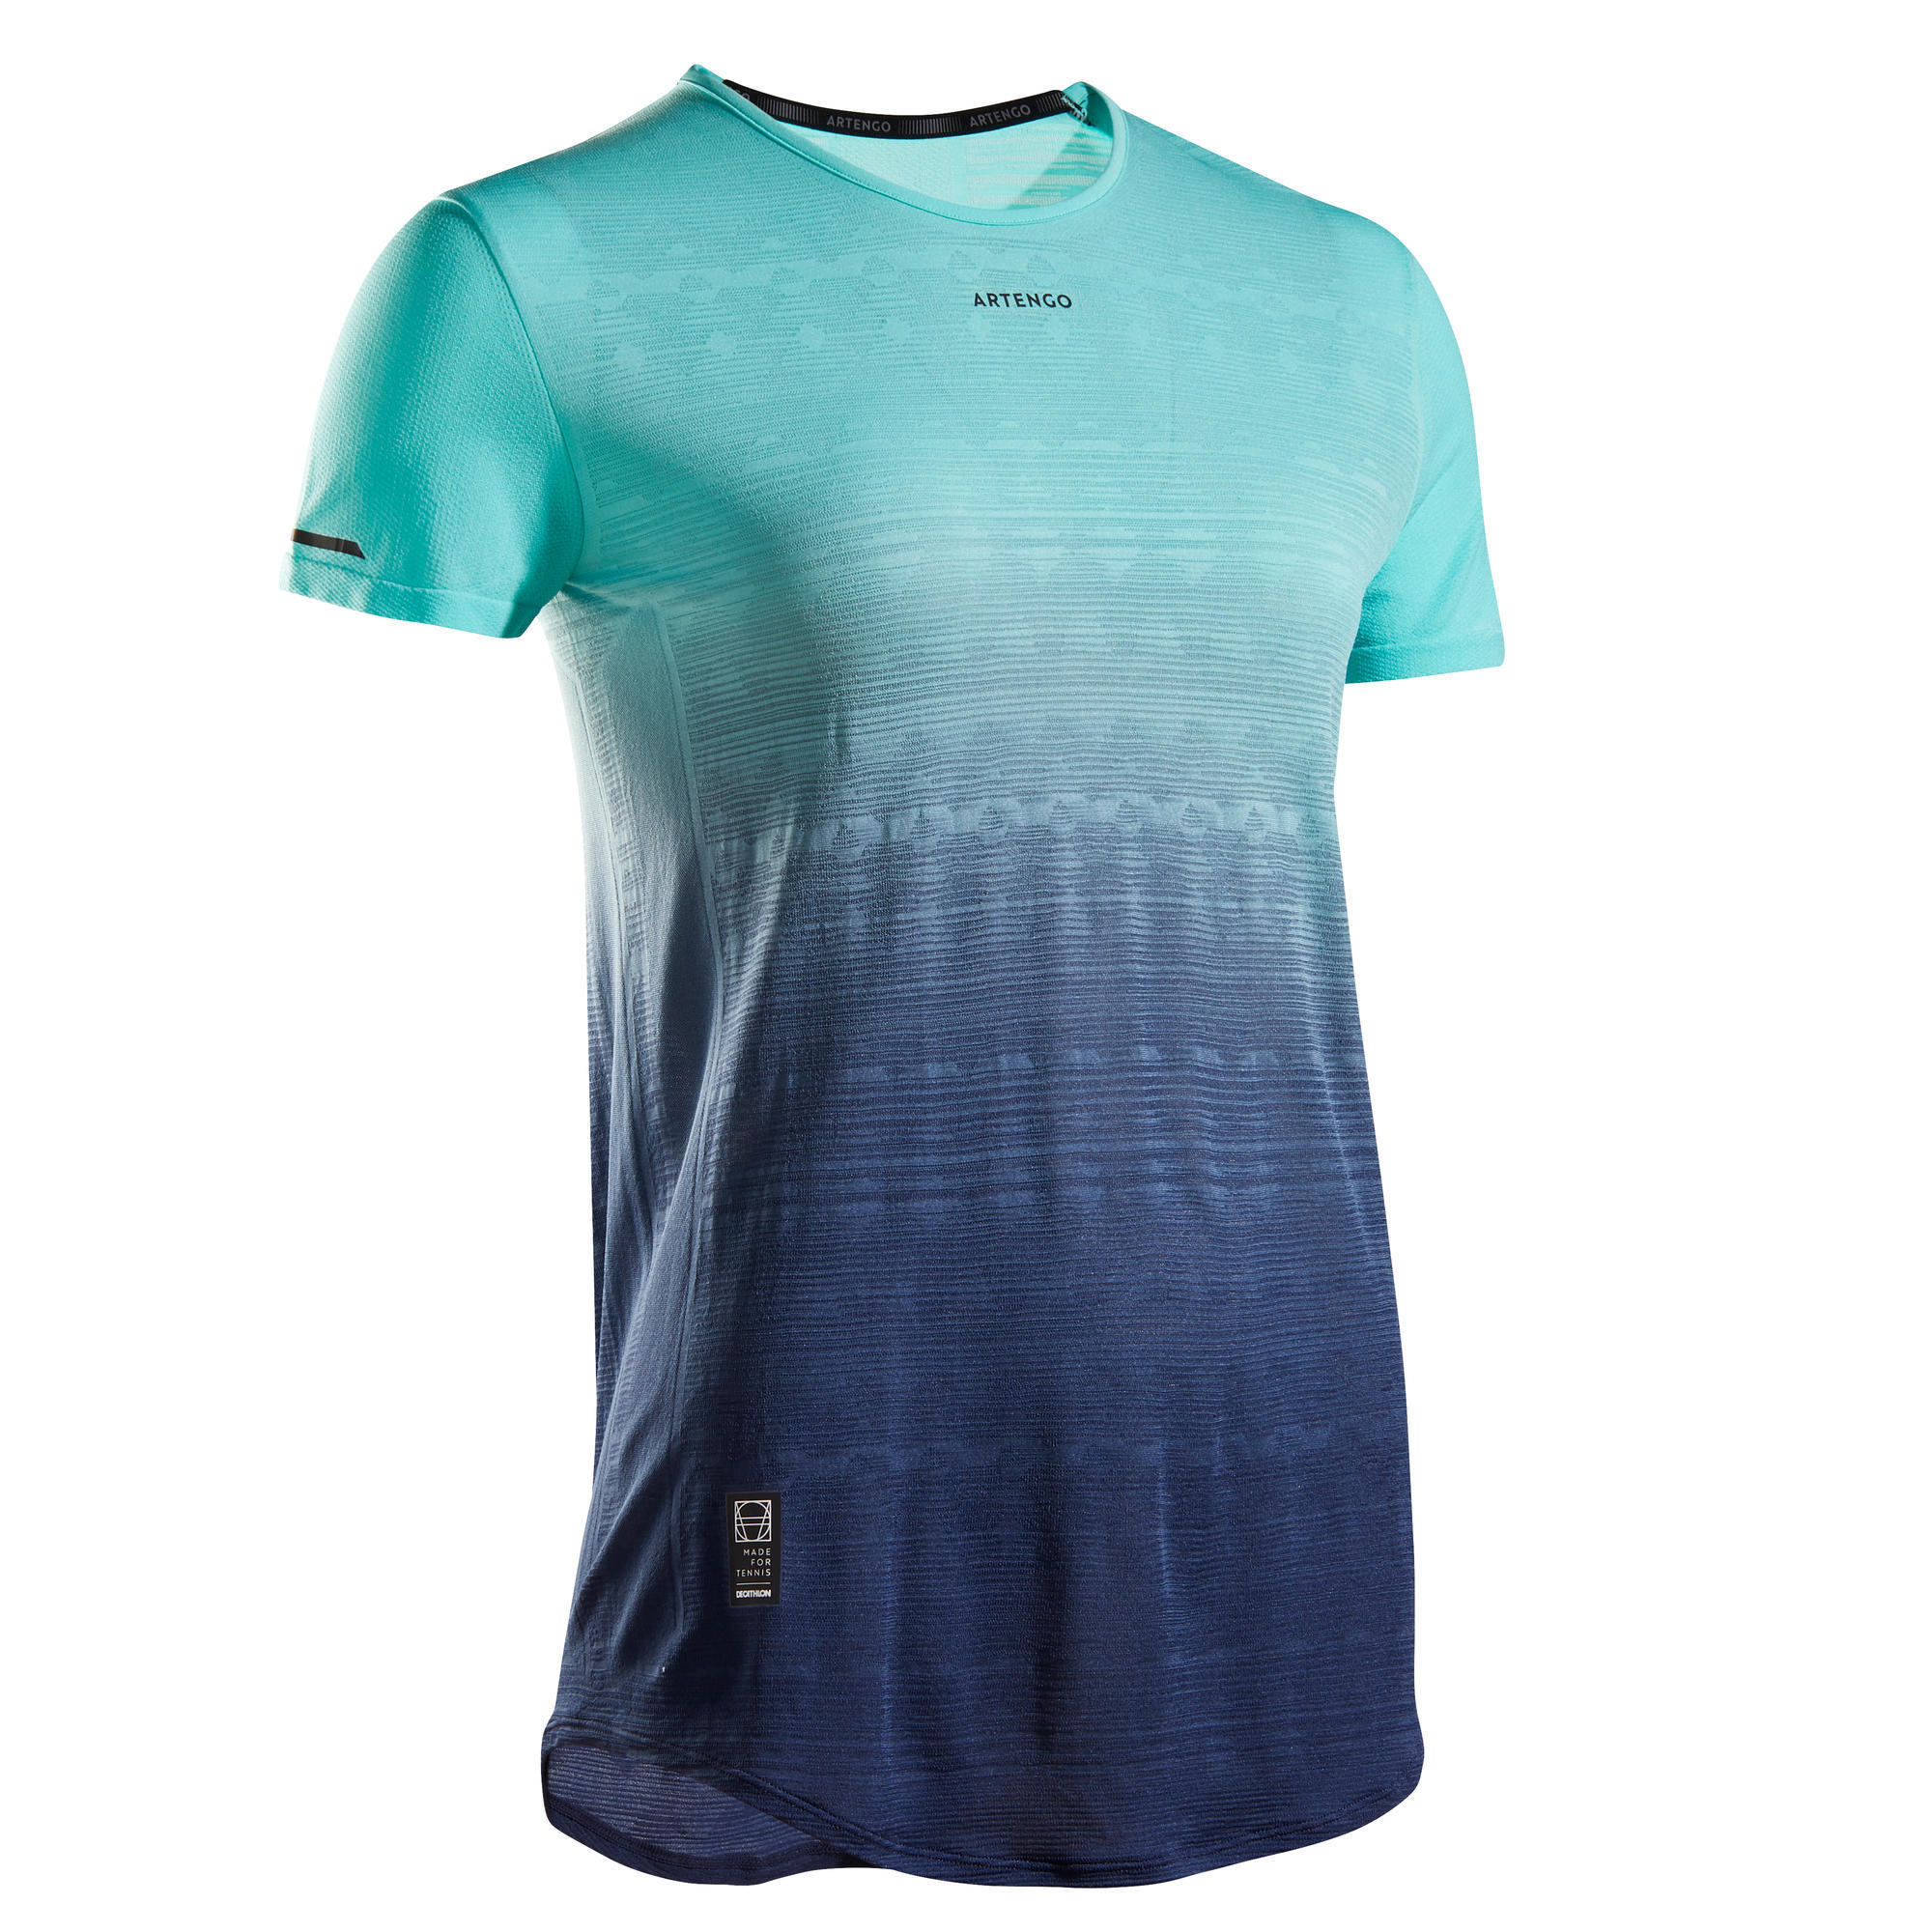 T-Shirt TS Light 990 Tennisshirt Damen marineblau/türkis